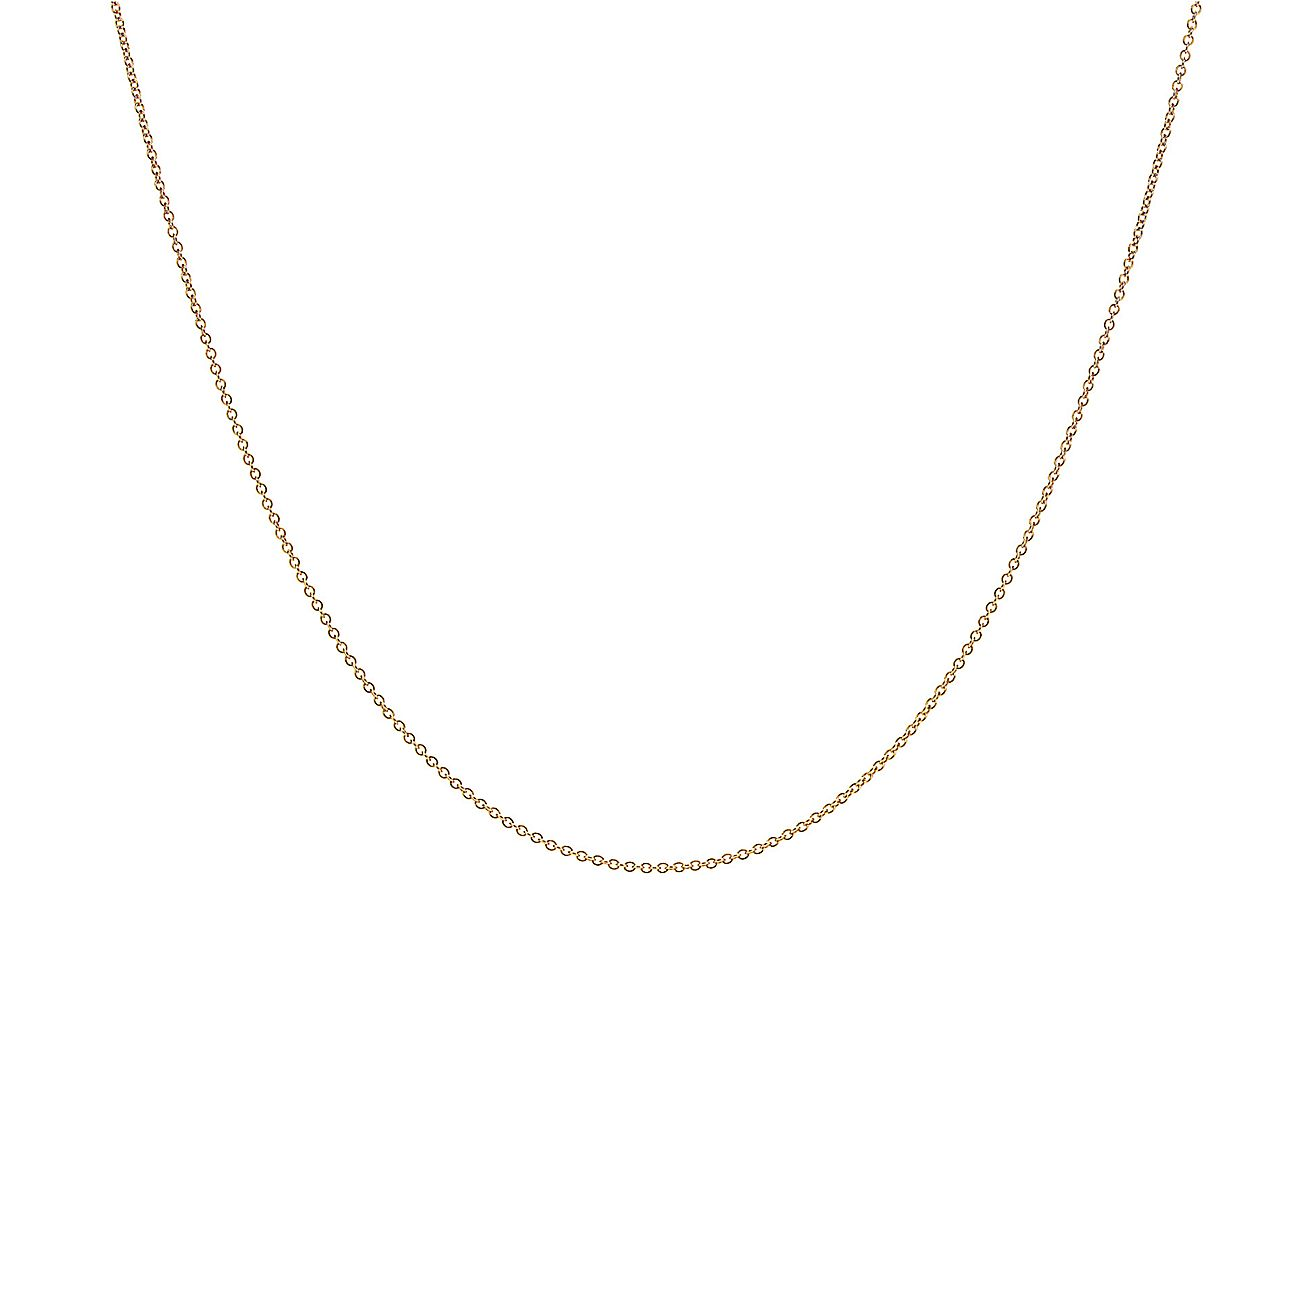 diamond bob mercaldo michele jewellery gold plumb jewelry necklace